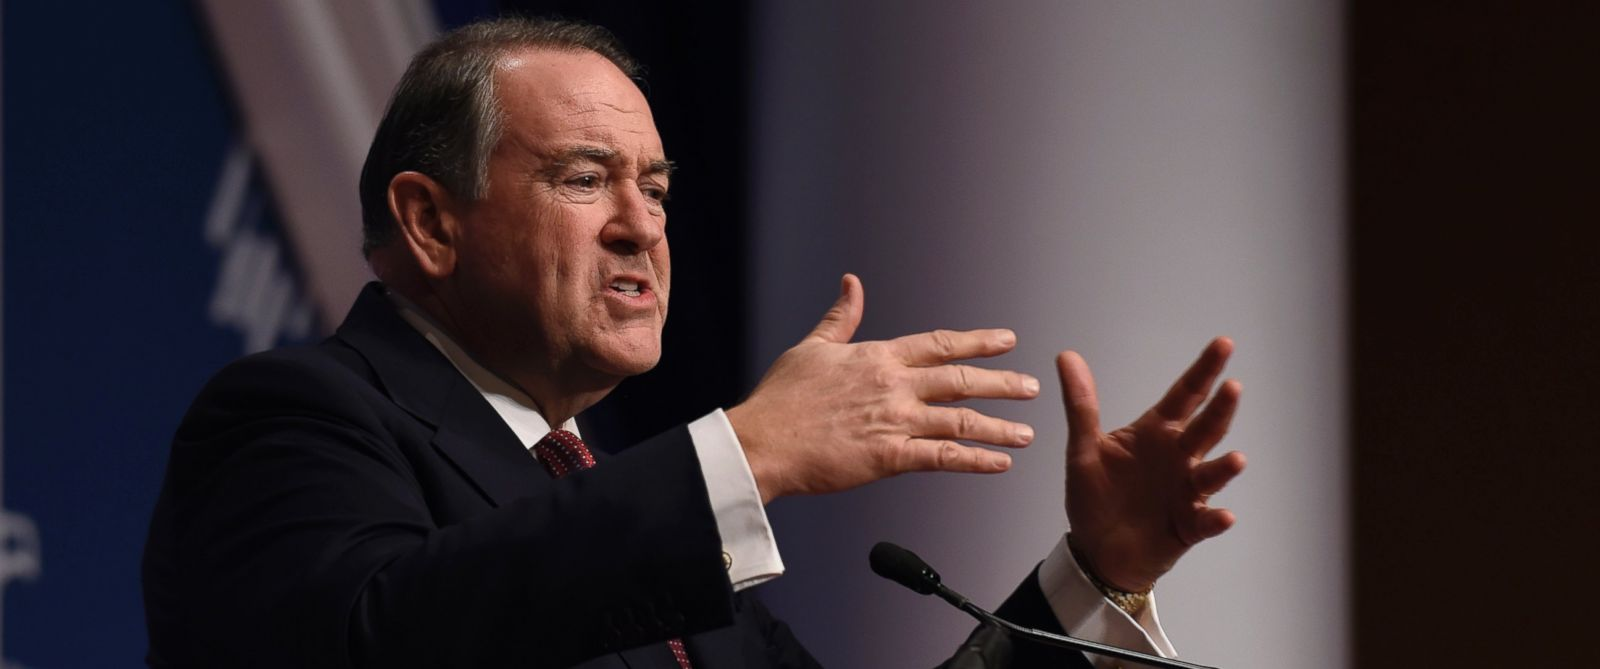 PHOTO: Republican presidential candidate, former Arkansas Gov. Mike Huckabee speaks at the Republican Jewish Coalition Presidential Forum in Washington, Thursday, Dec. 3, 2015.